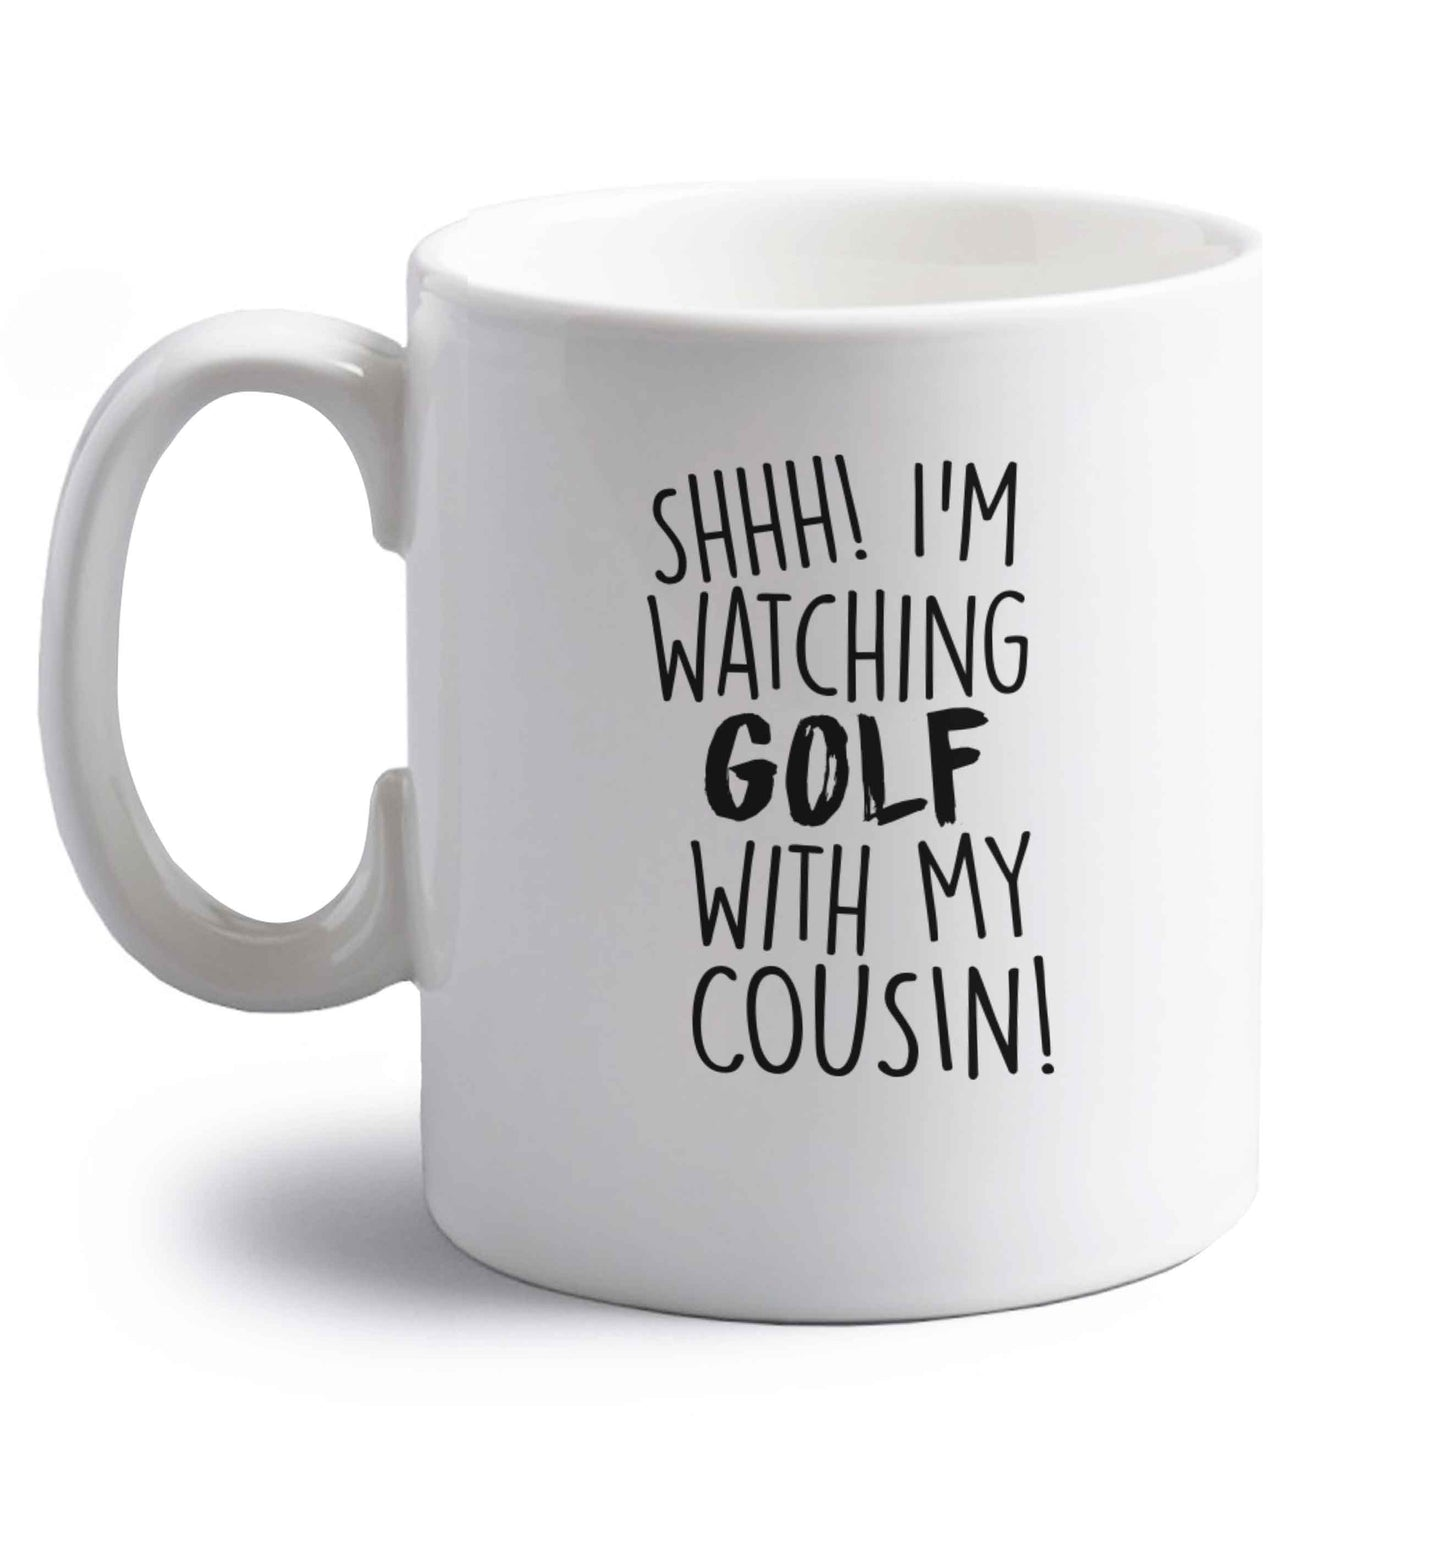 Shh I'm watching golf with my cousin right handed white ceramic mug